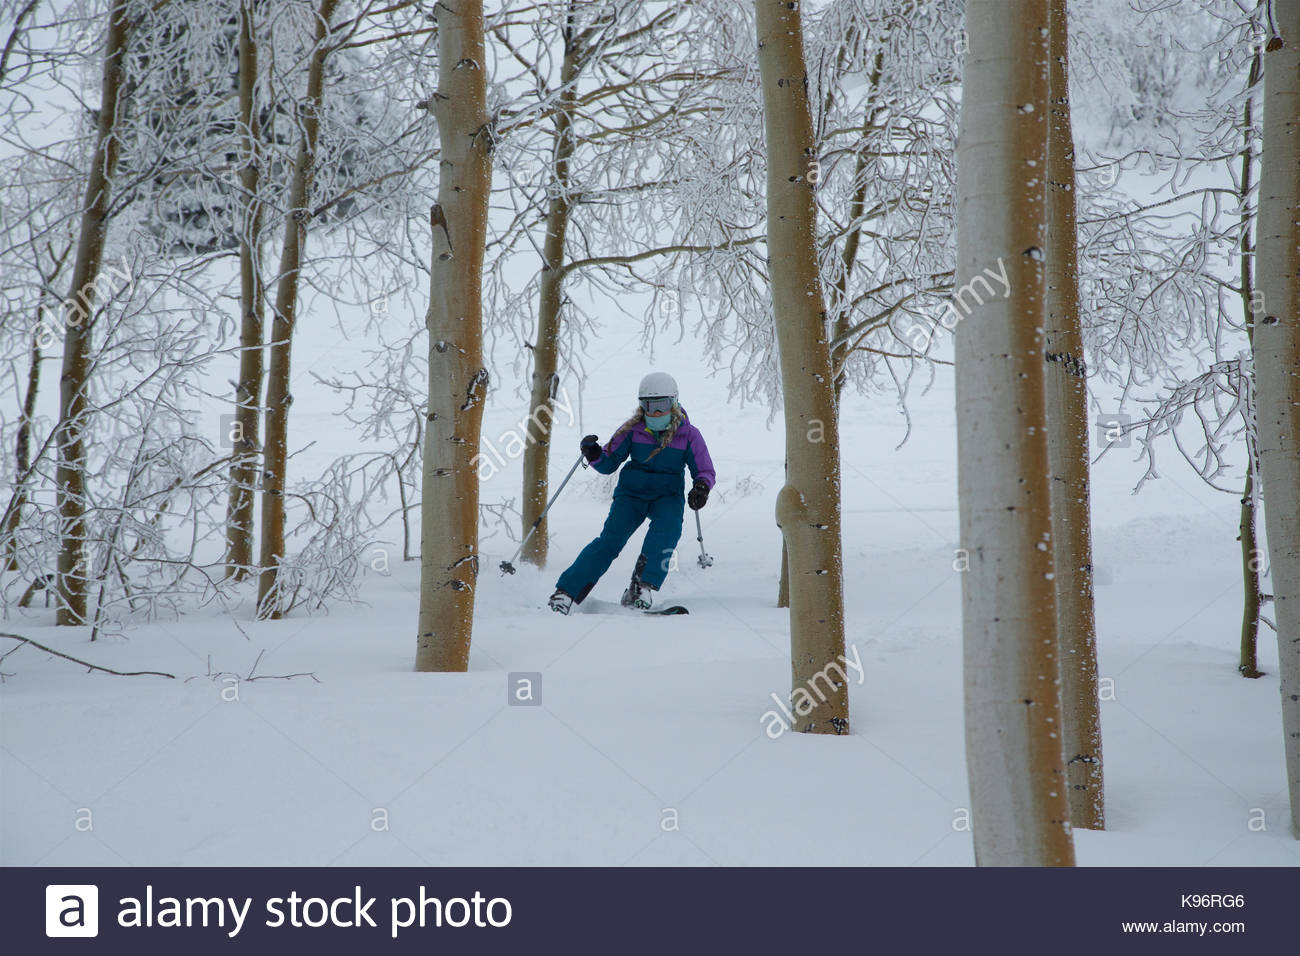 A teen girl downhill skiing through the trees on a stormy day. - Stock Image